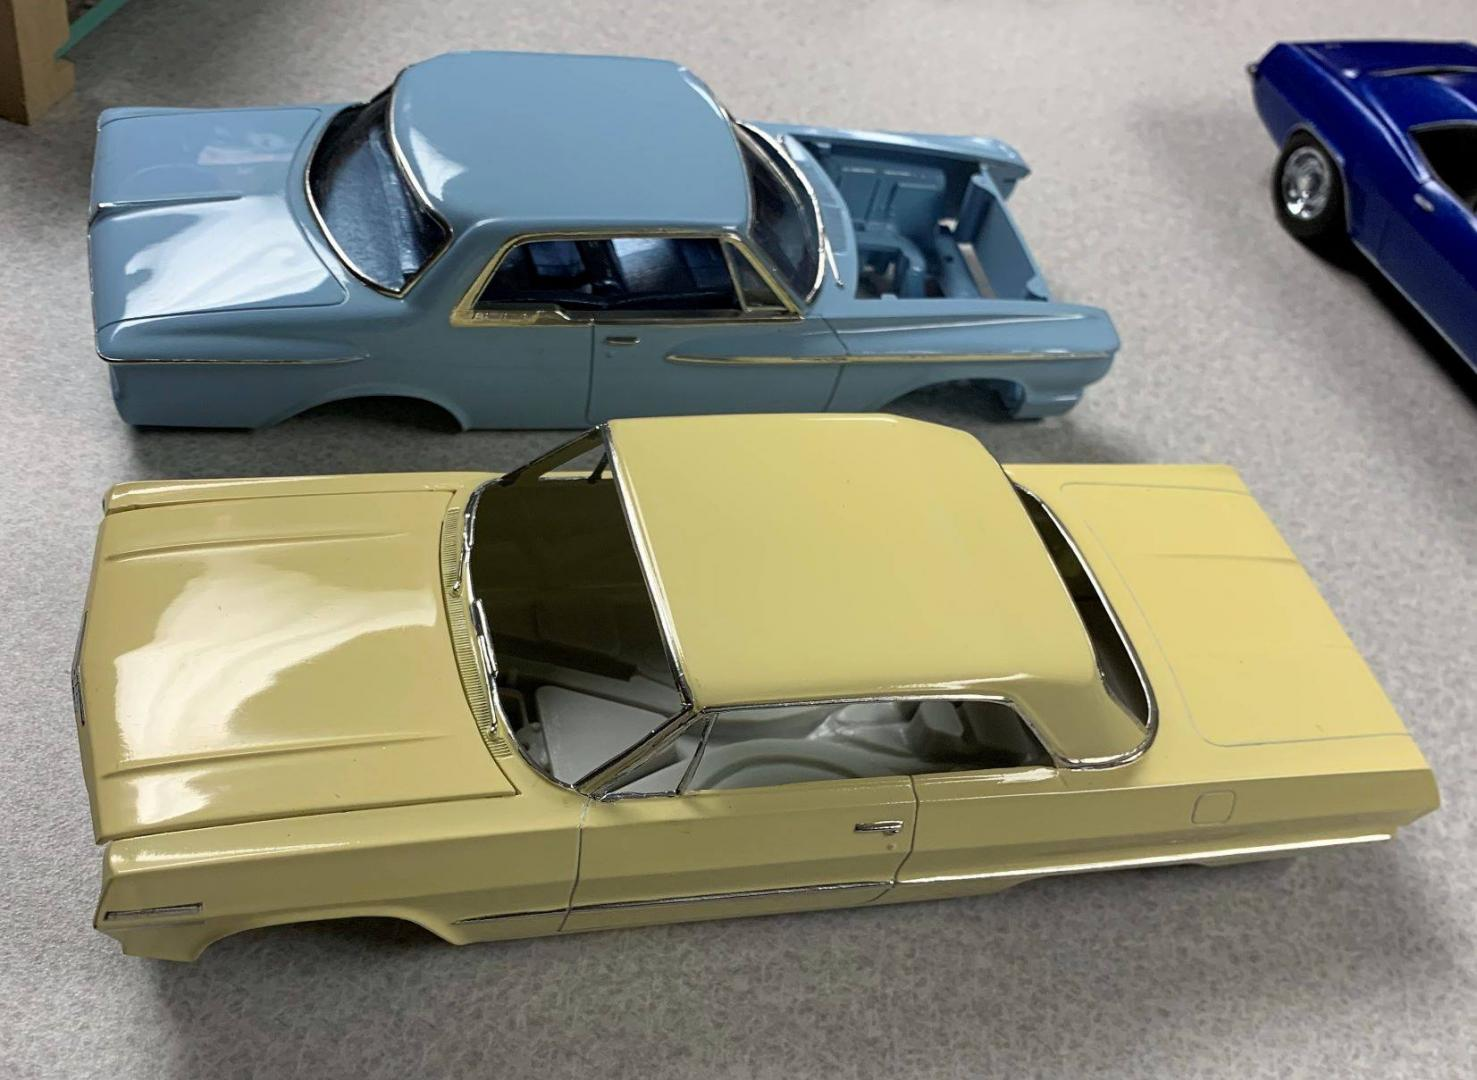 1962 Plymouth and 1963 Chev at model meeting April 28,2019,Check out the shine.jpg